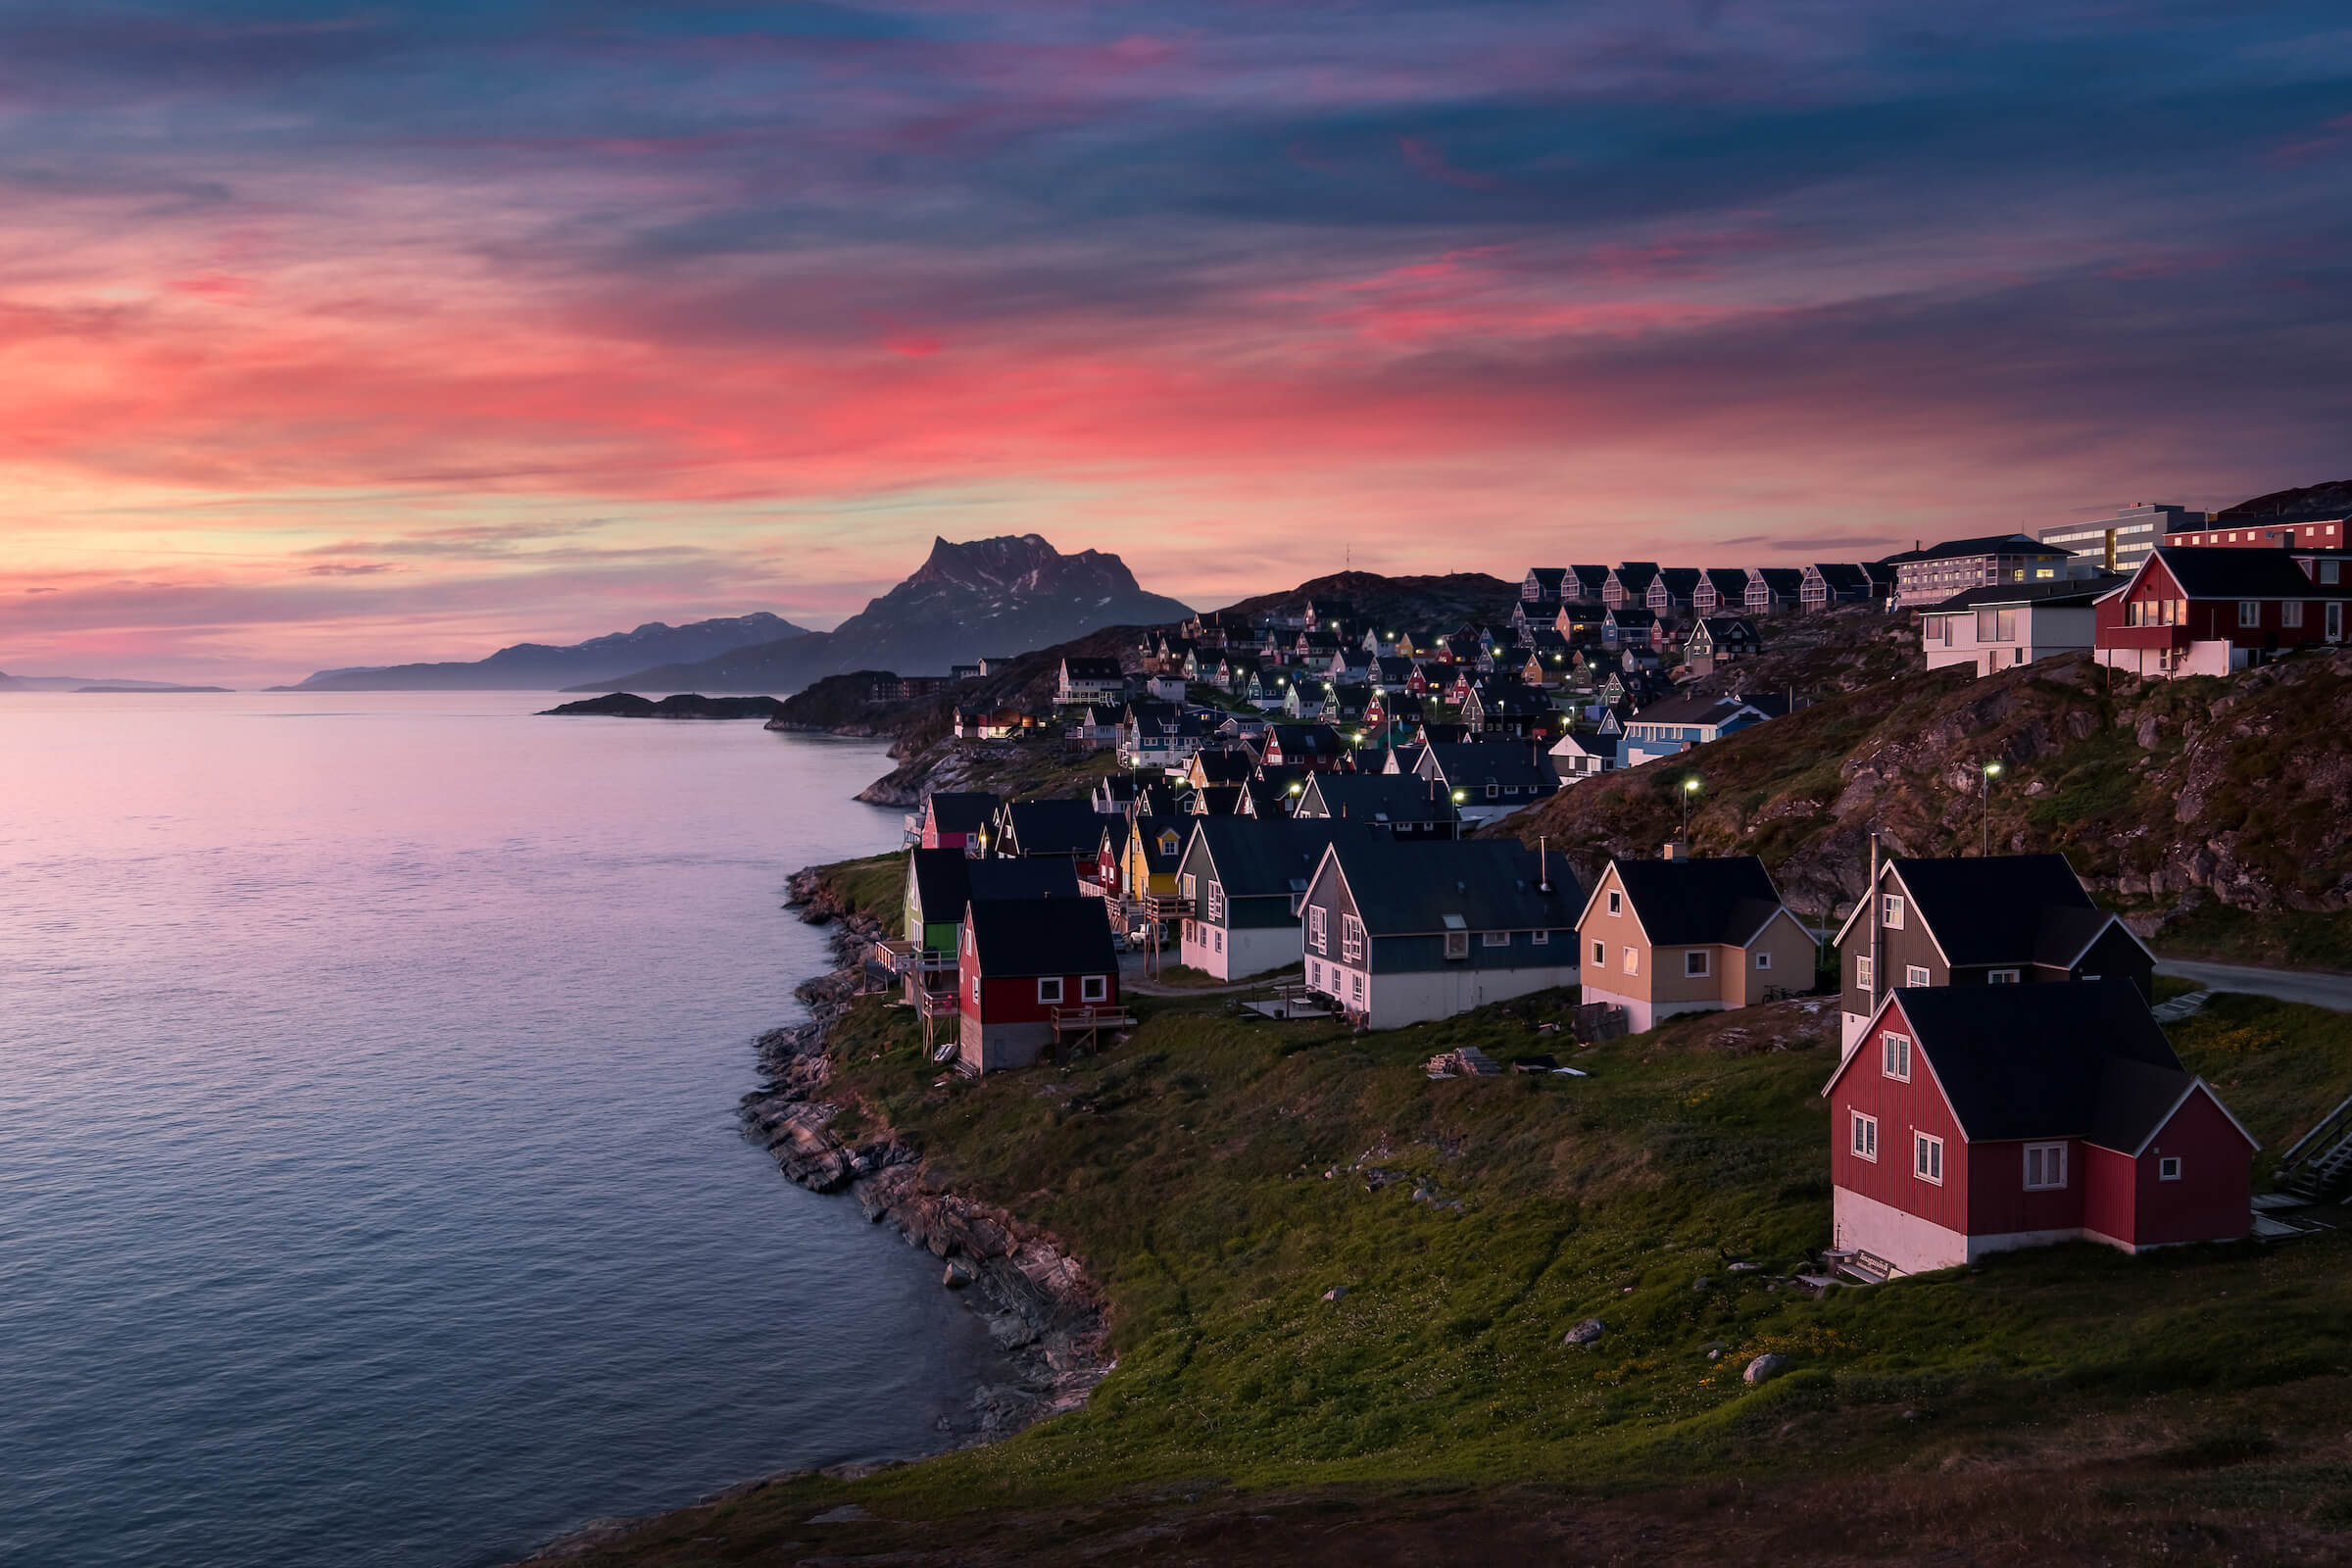 Pink sky, colourful Nuuk. Photo by Elia Locardi - Visit Greenland